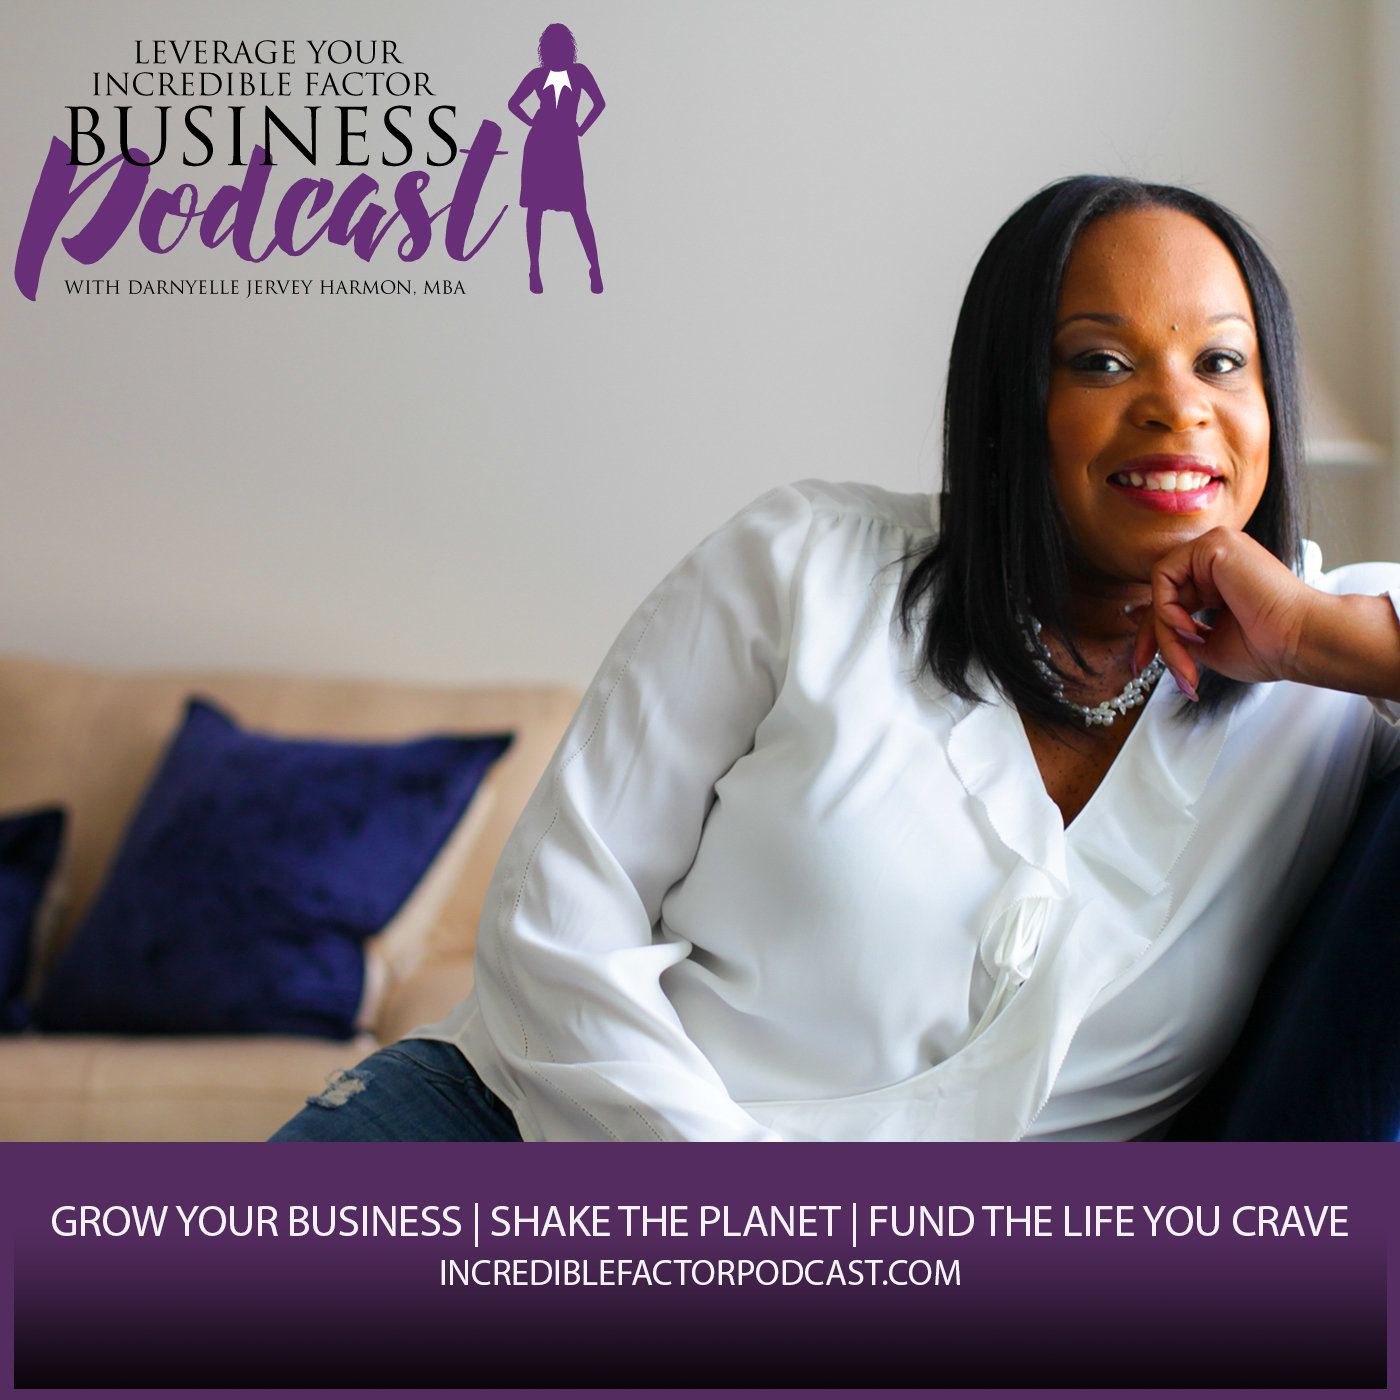 Leverage Your Incredible Factor Business Podcast with Darnyelle Jervey Harmon, MBA